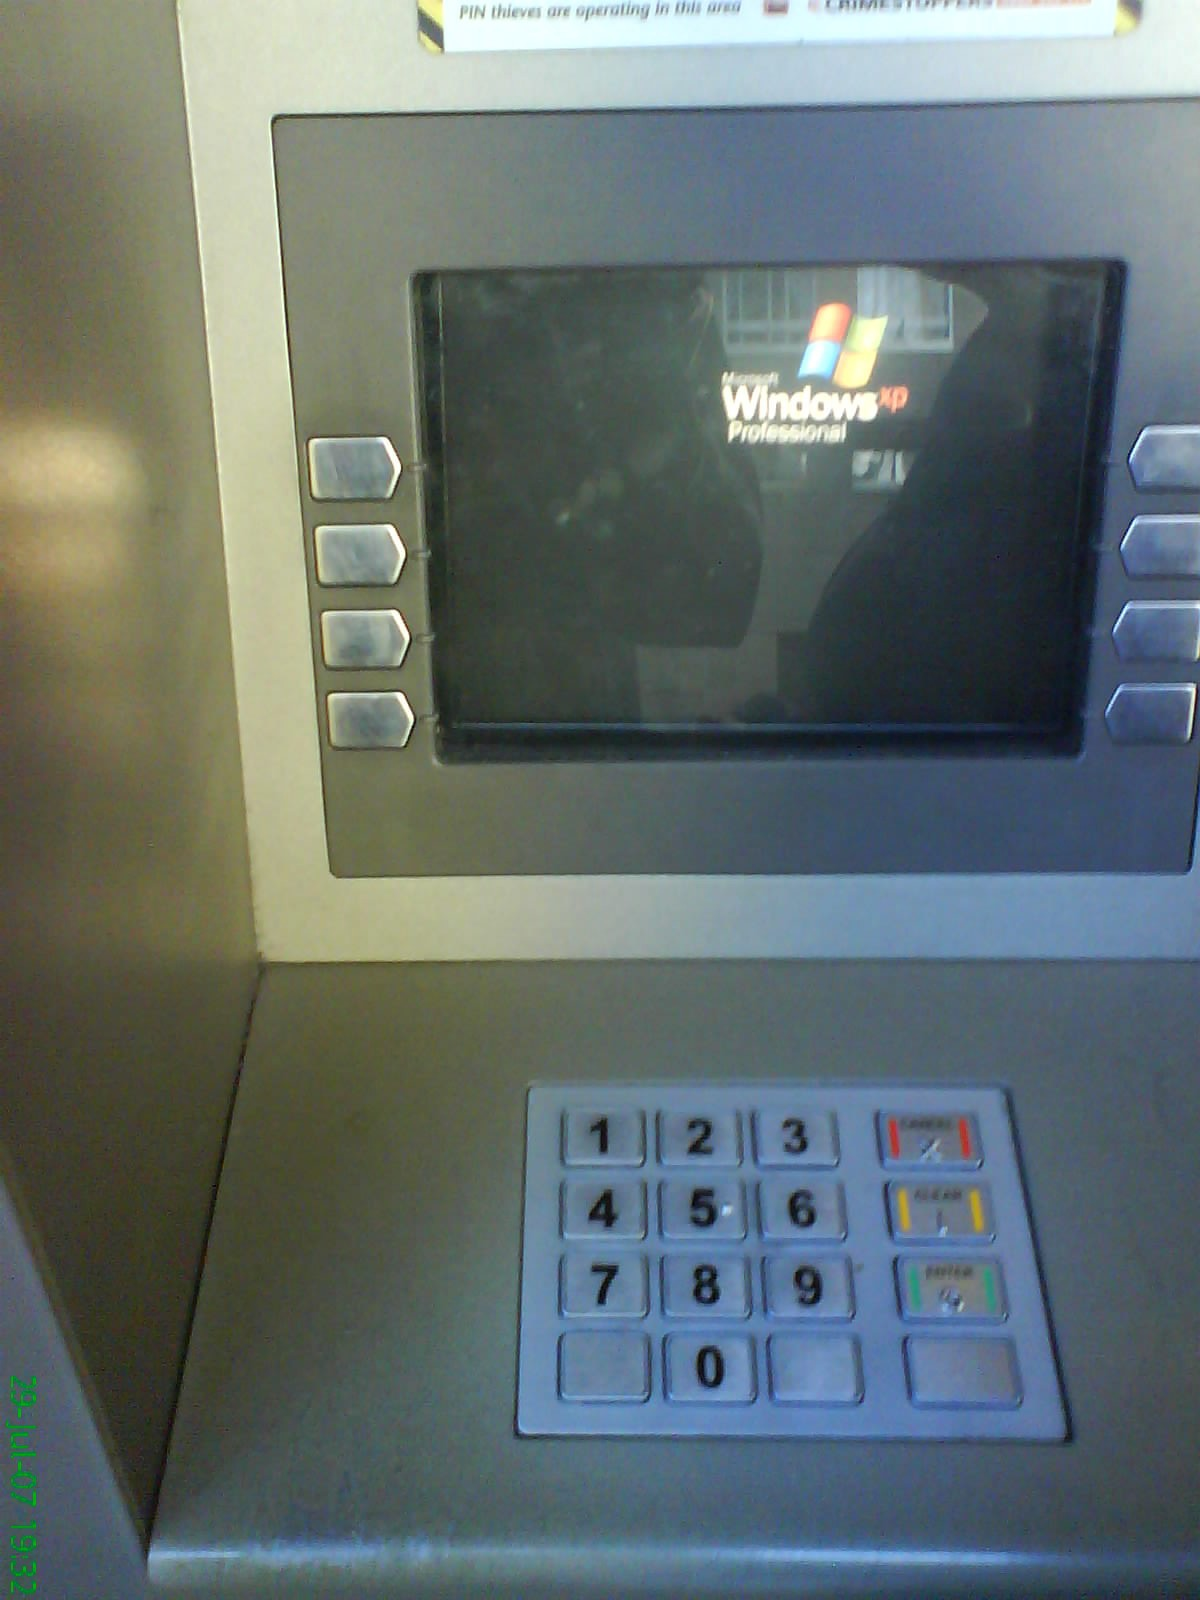 Do ATMs running Windows XP pose a security risk? You can bank on it